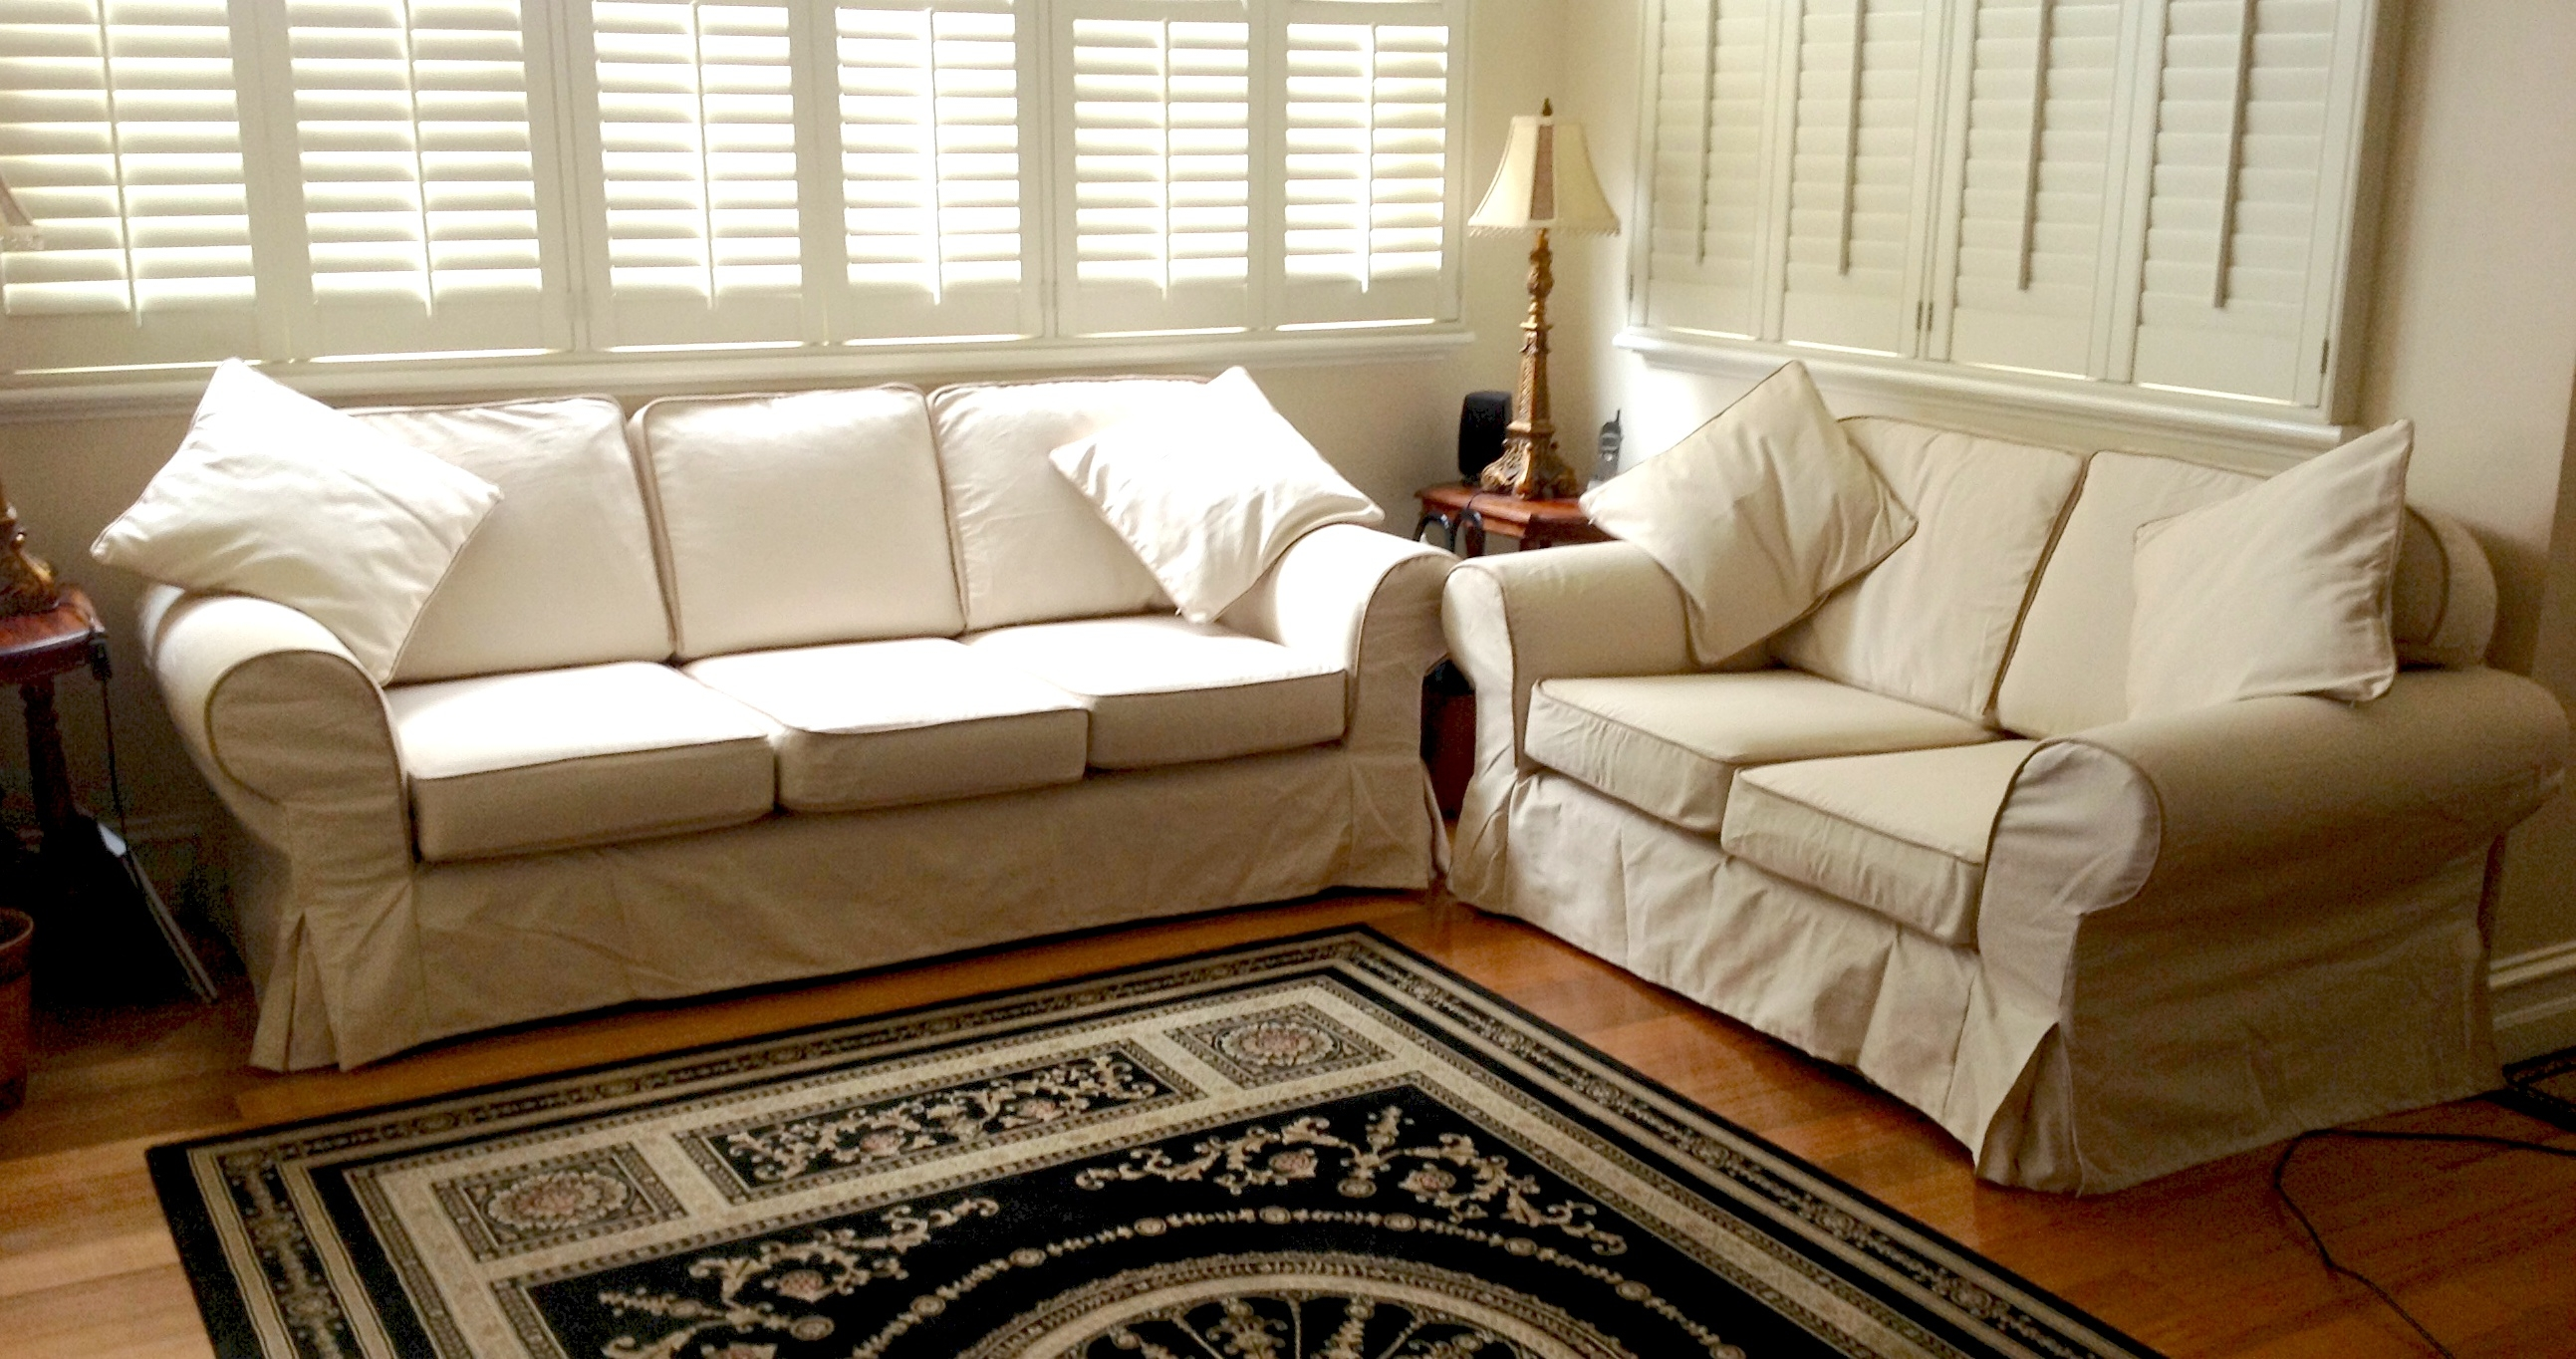 Popular Photo of 3 Piece Sectional Sofa Slipcovers